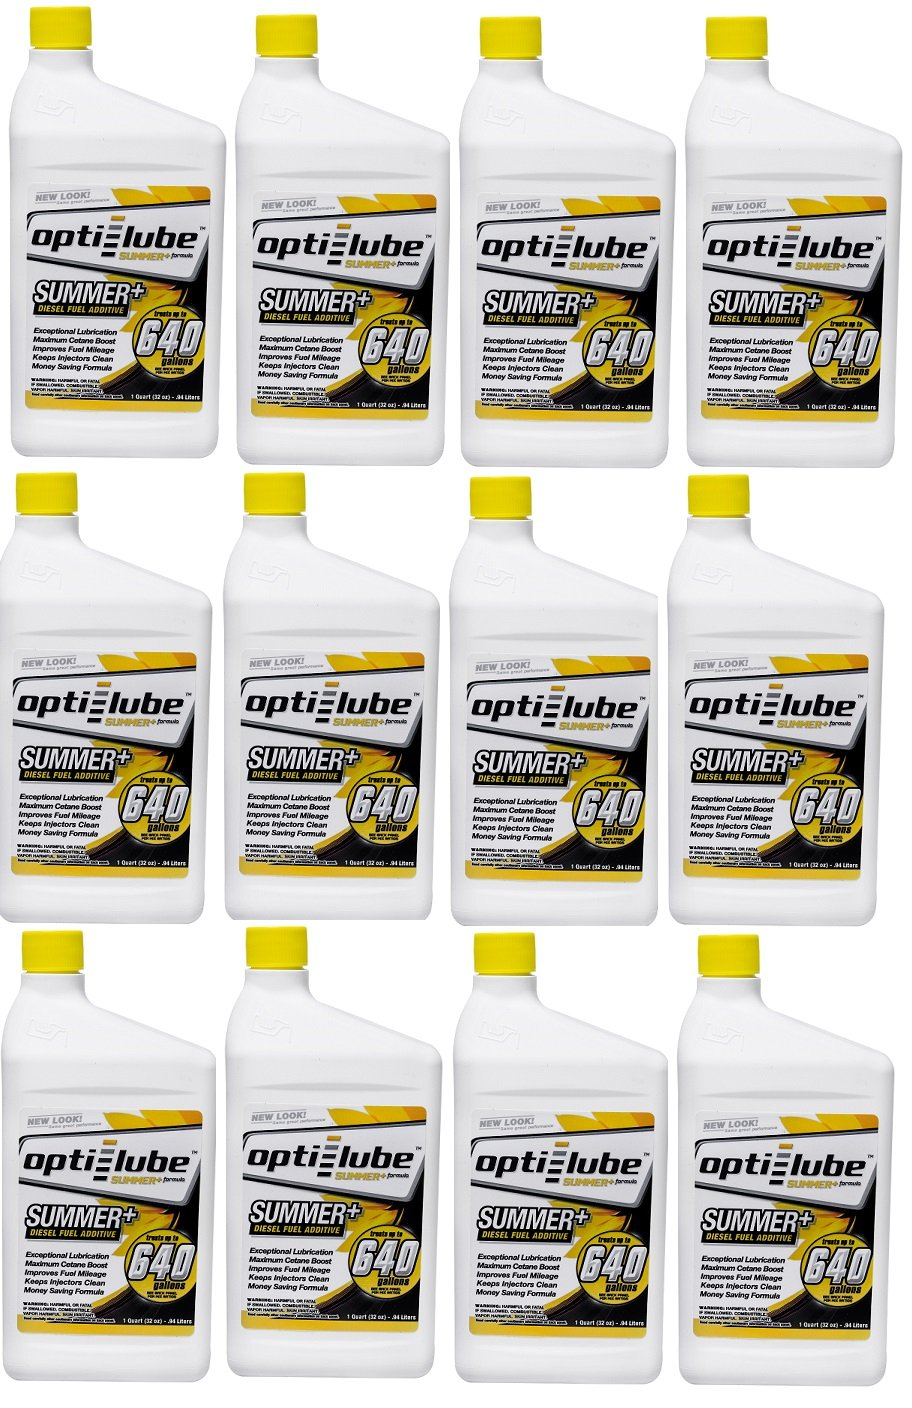 Opti-Lube Summer+ Formula Diesel Fuel Additive: Quart, Case of 12 Treats up to 640 Gallons per Quart